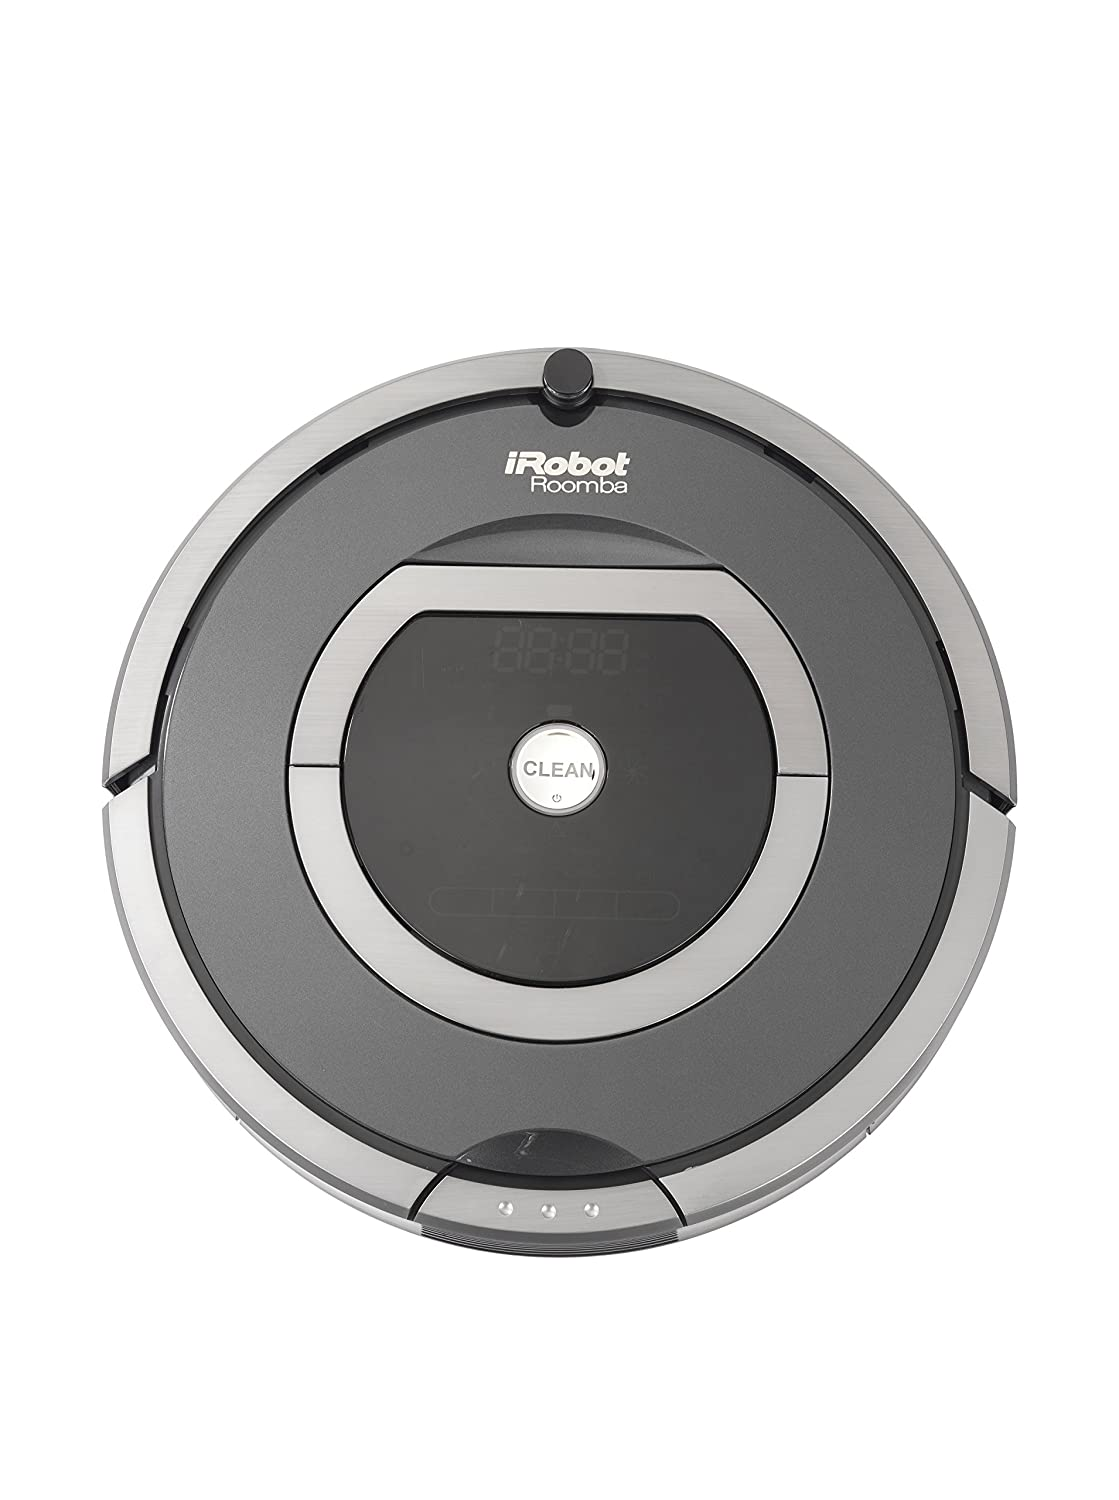 How To Program Irobot Roomba Tech Products Reviews